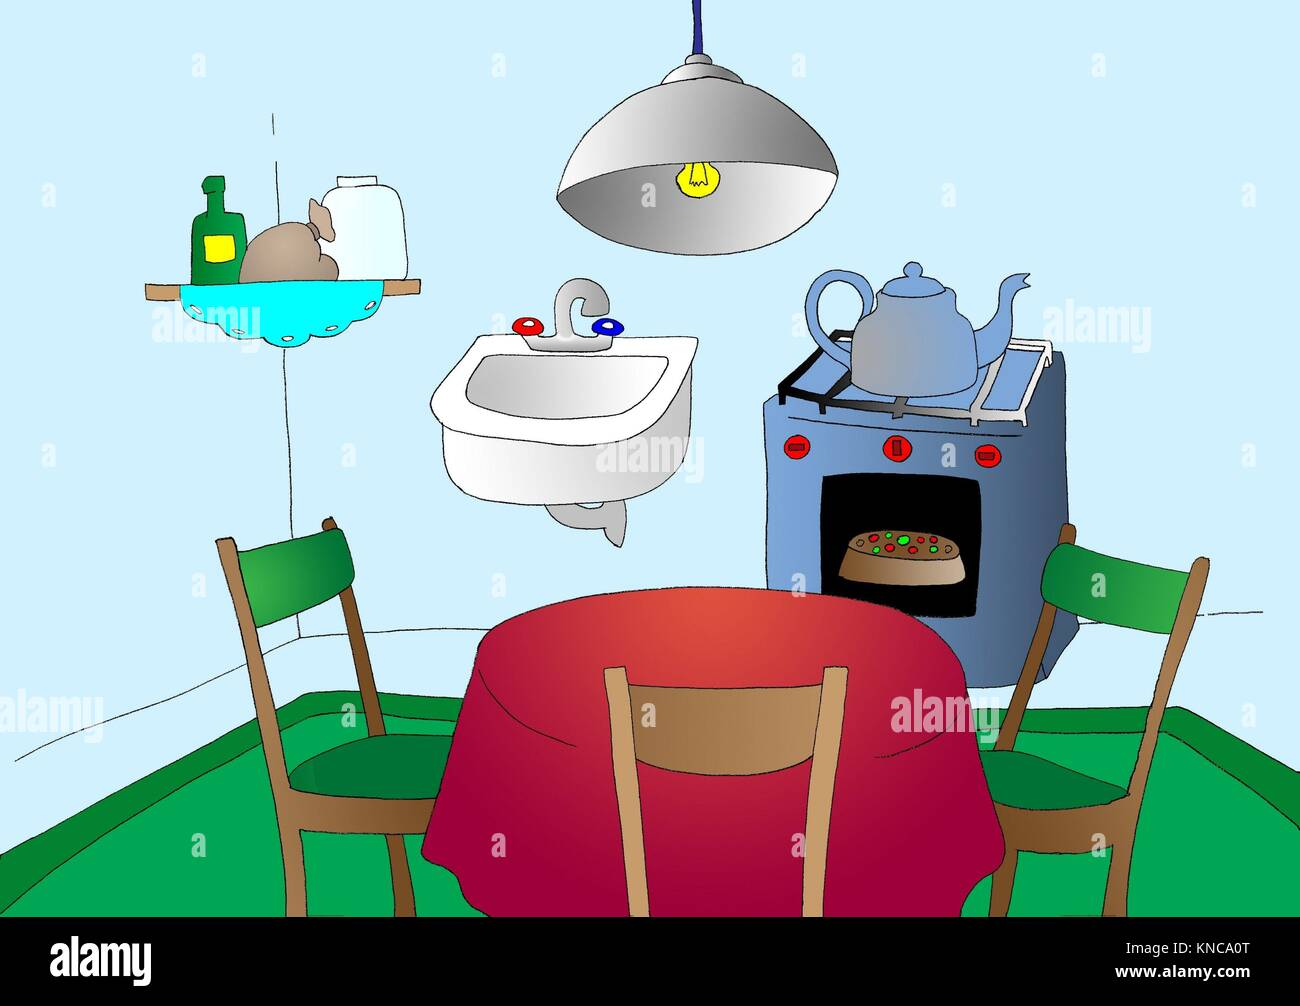 Cartoon Kitchen. Digital Painting Background, Illustration in primitive cartoon style character. - Stock Image